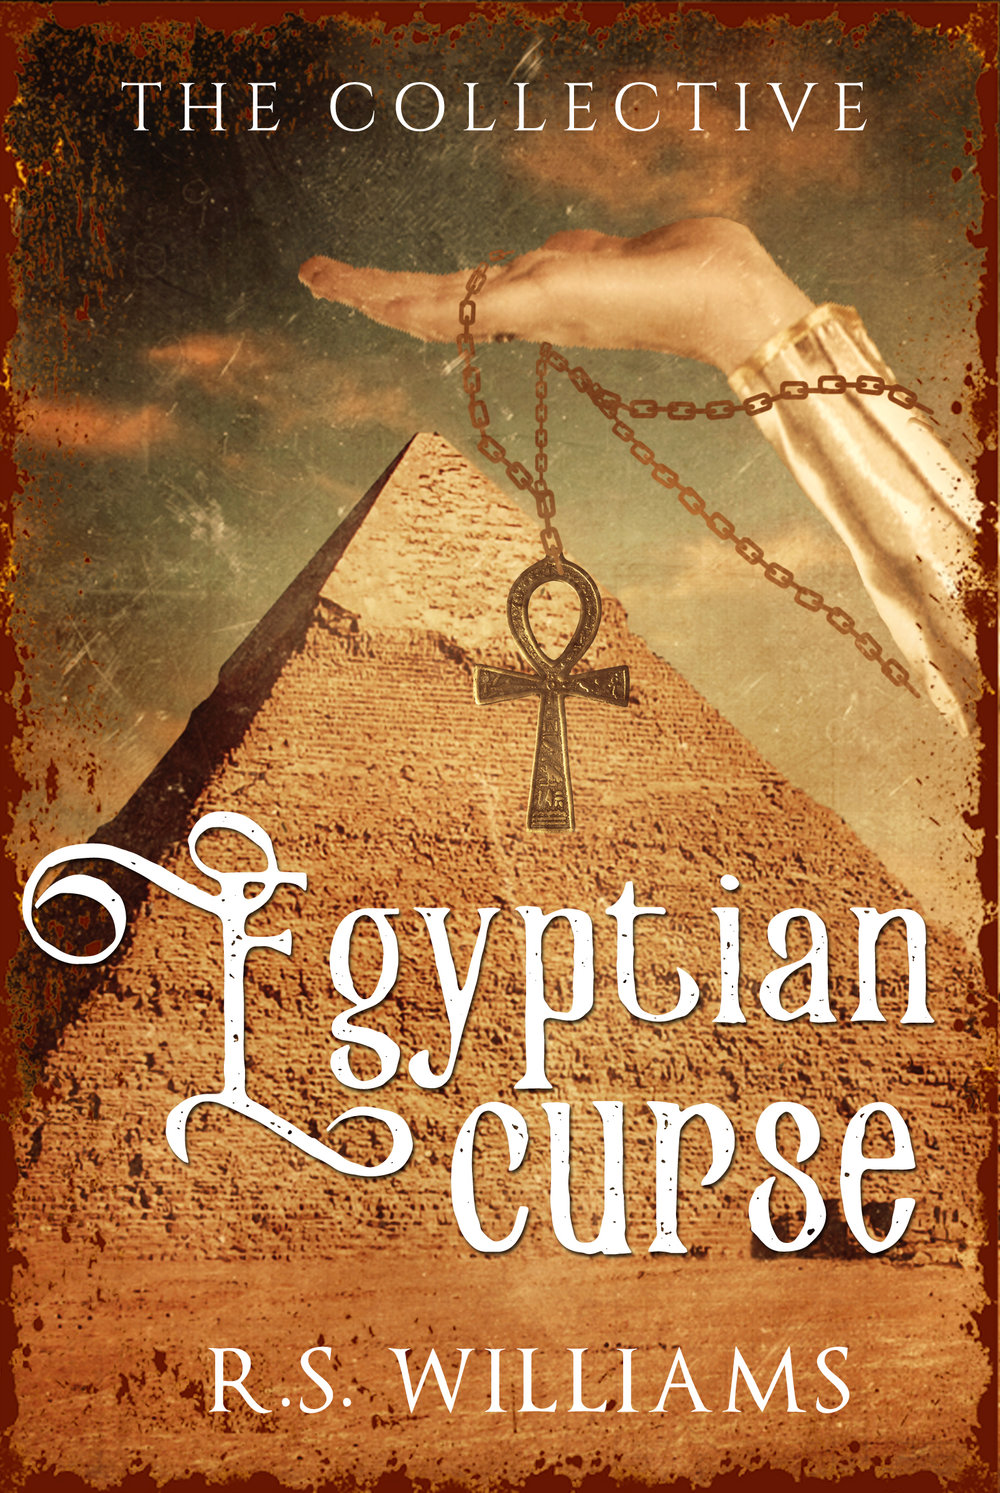 Available for Pre-Order: A little sitter hell-bent on revenge tries to interfere in Jenny's life by trapping her in Ancient Egypt, where a curse fuelled by a feuding Pharaoh and Priest consumes the land.